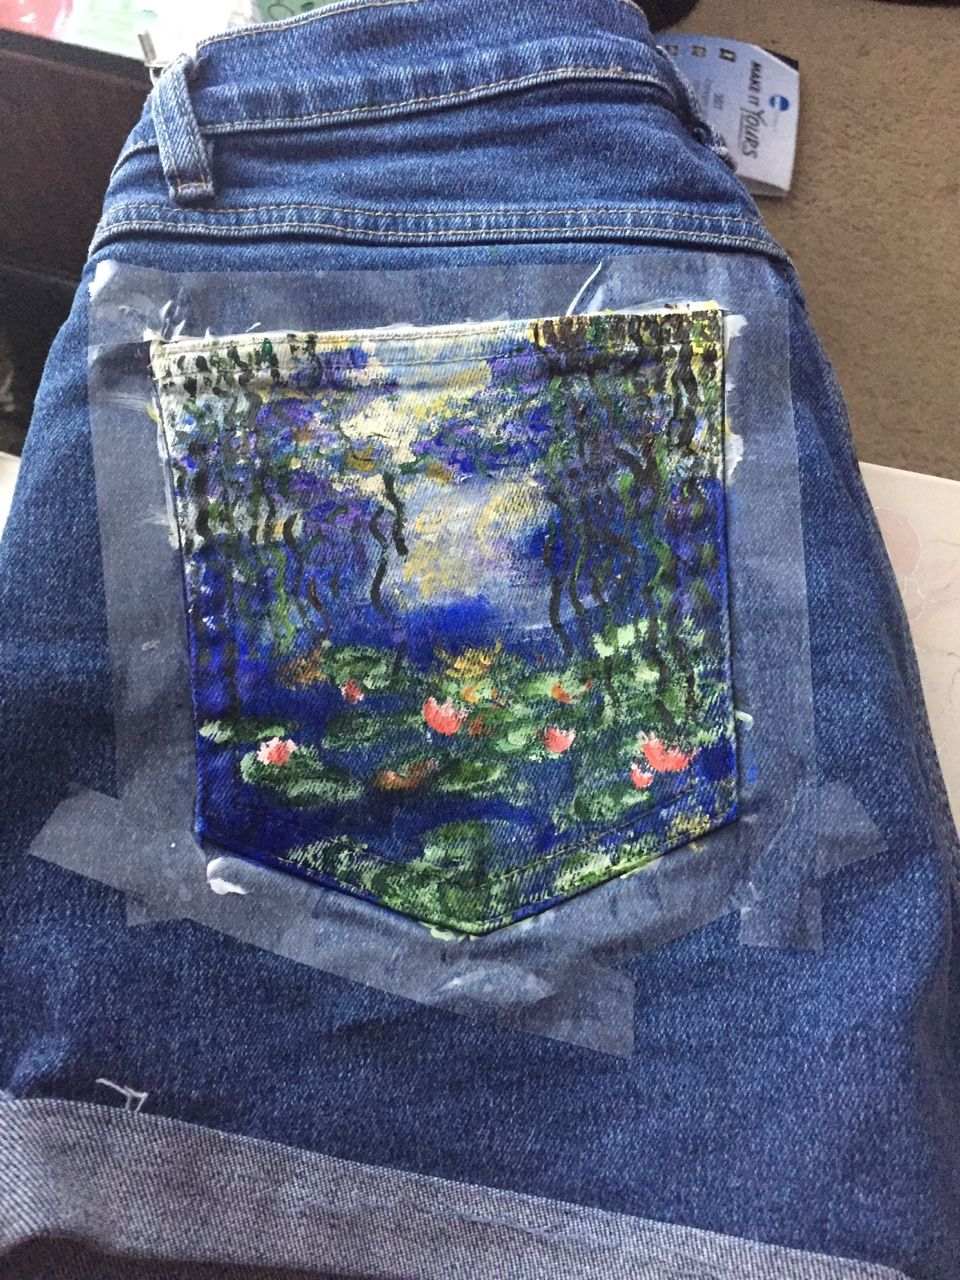 Acrylic Craft Paint Clothes